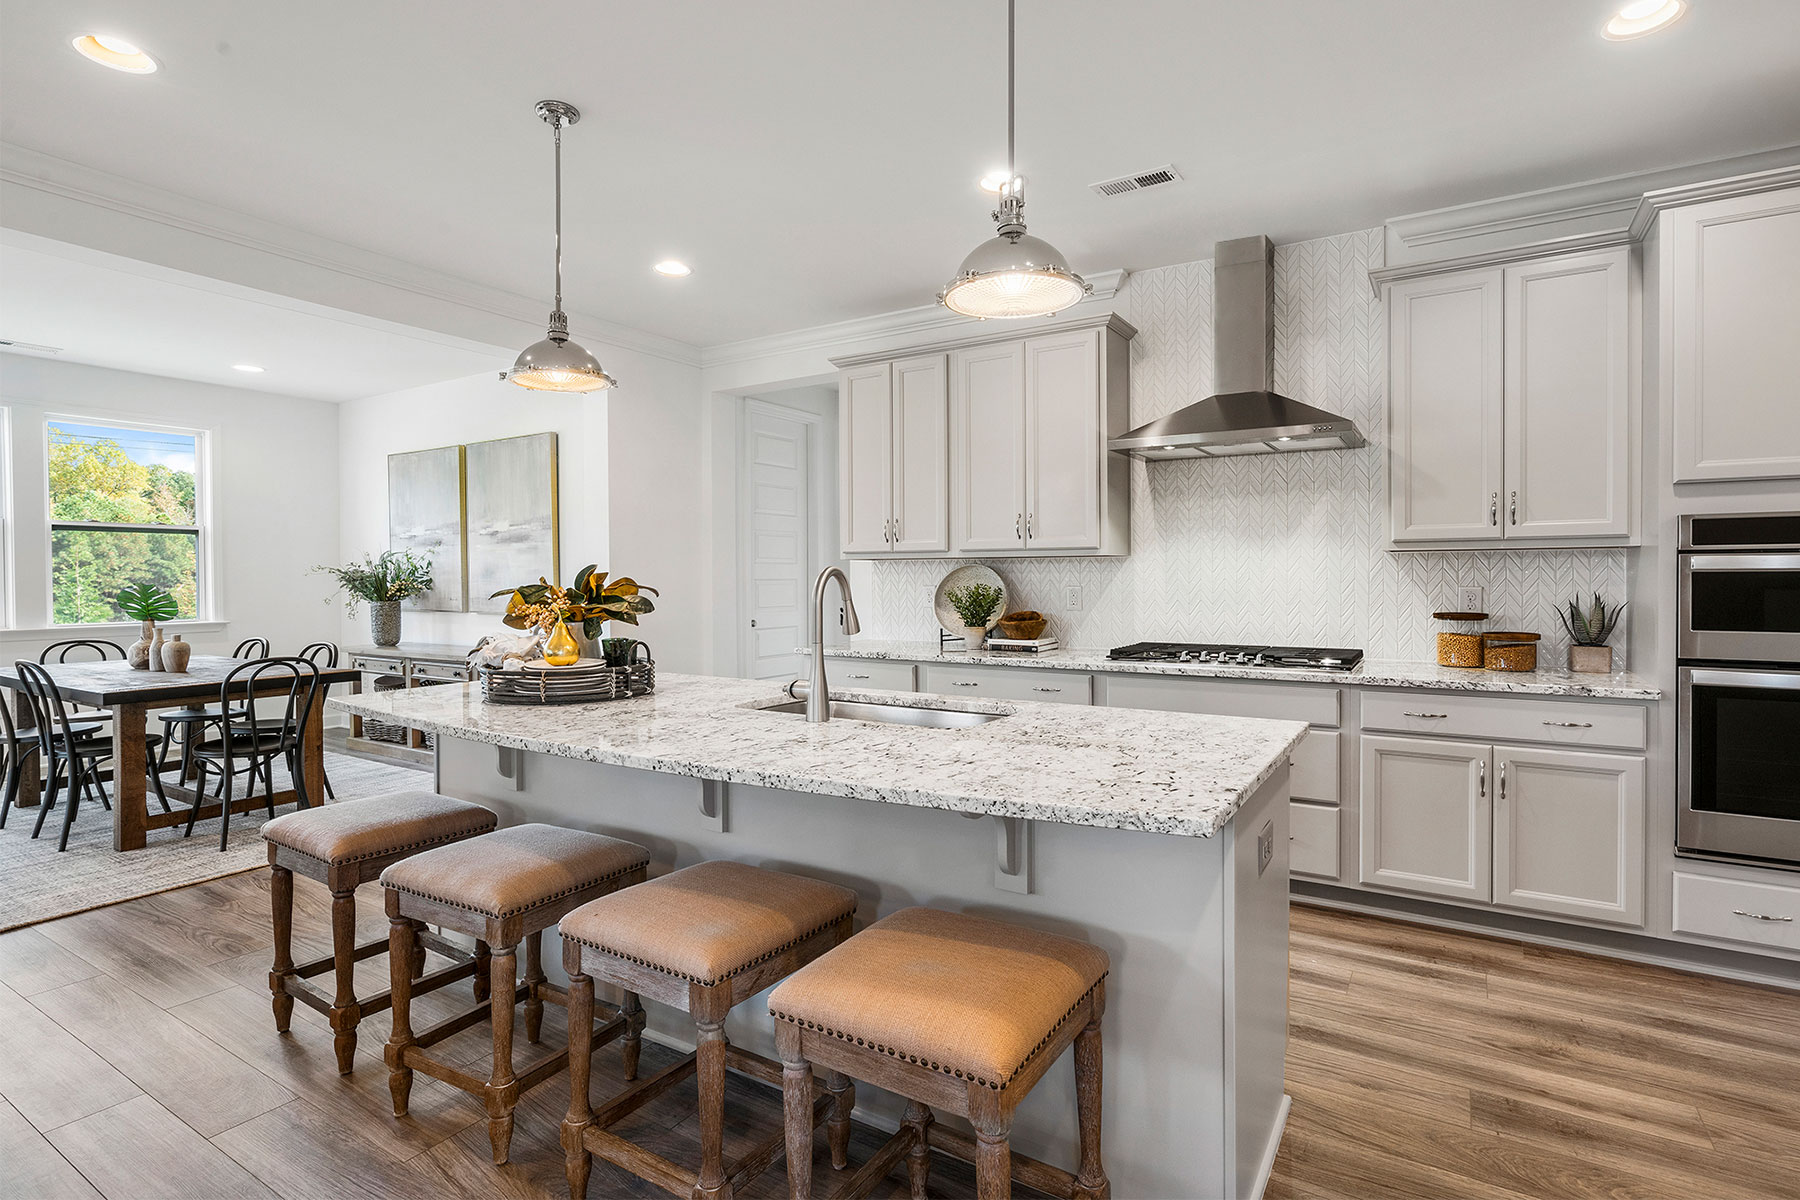 Abbott Plan Kitchen at Portofino in Clayton North Carolina by Mattamy Homes